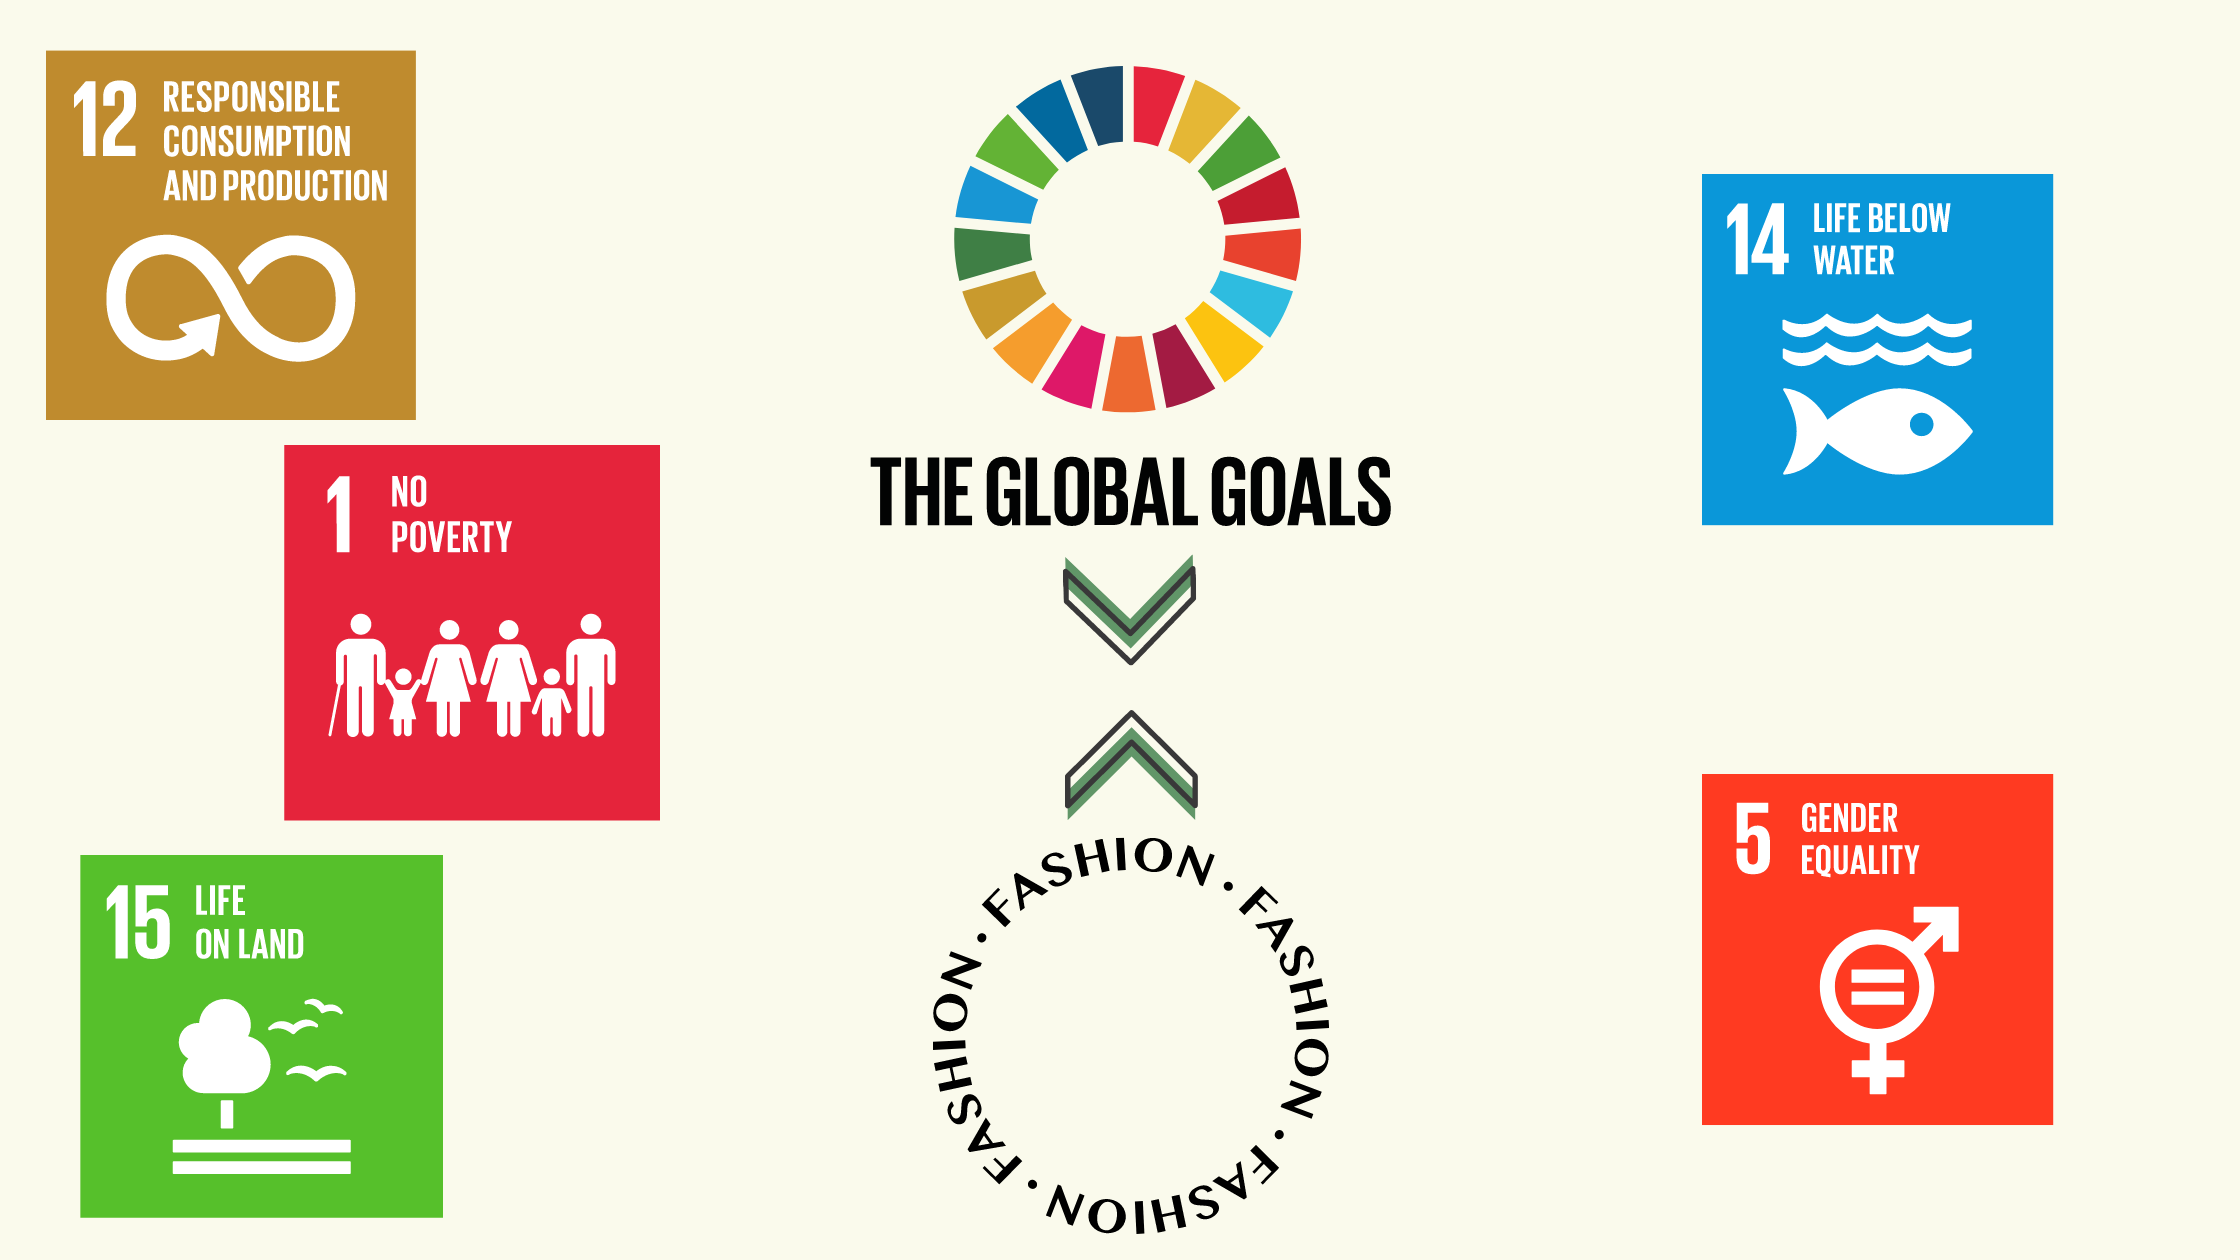 De Sustainable Development Goals en de mode-industrie